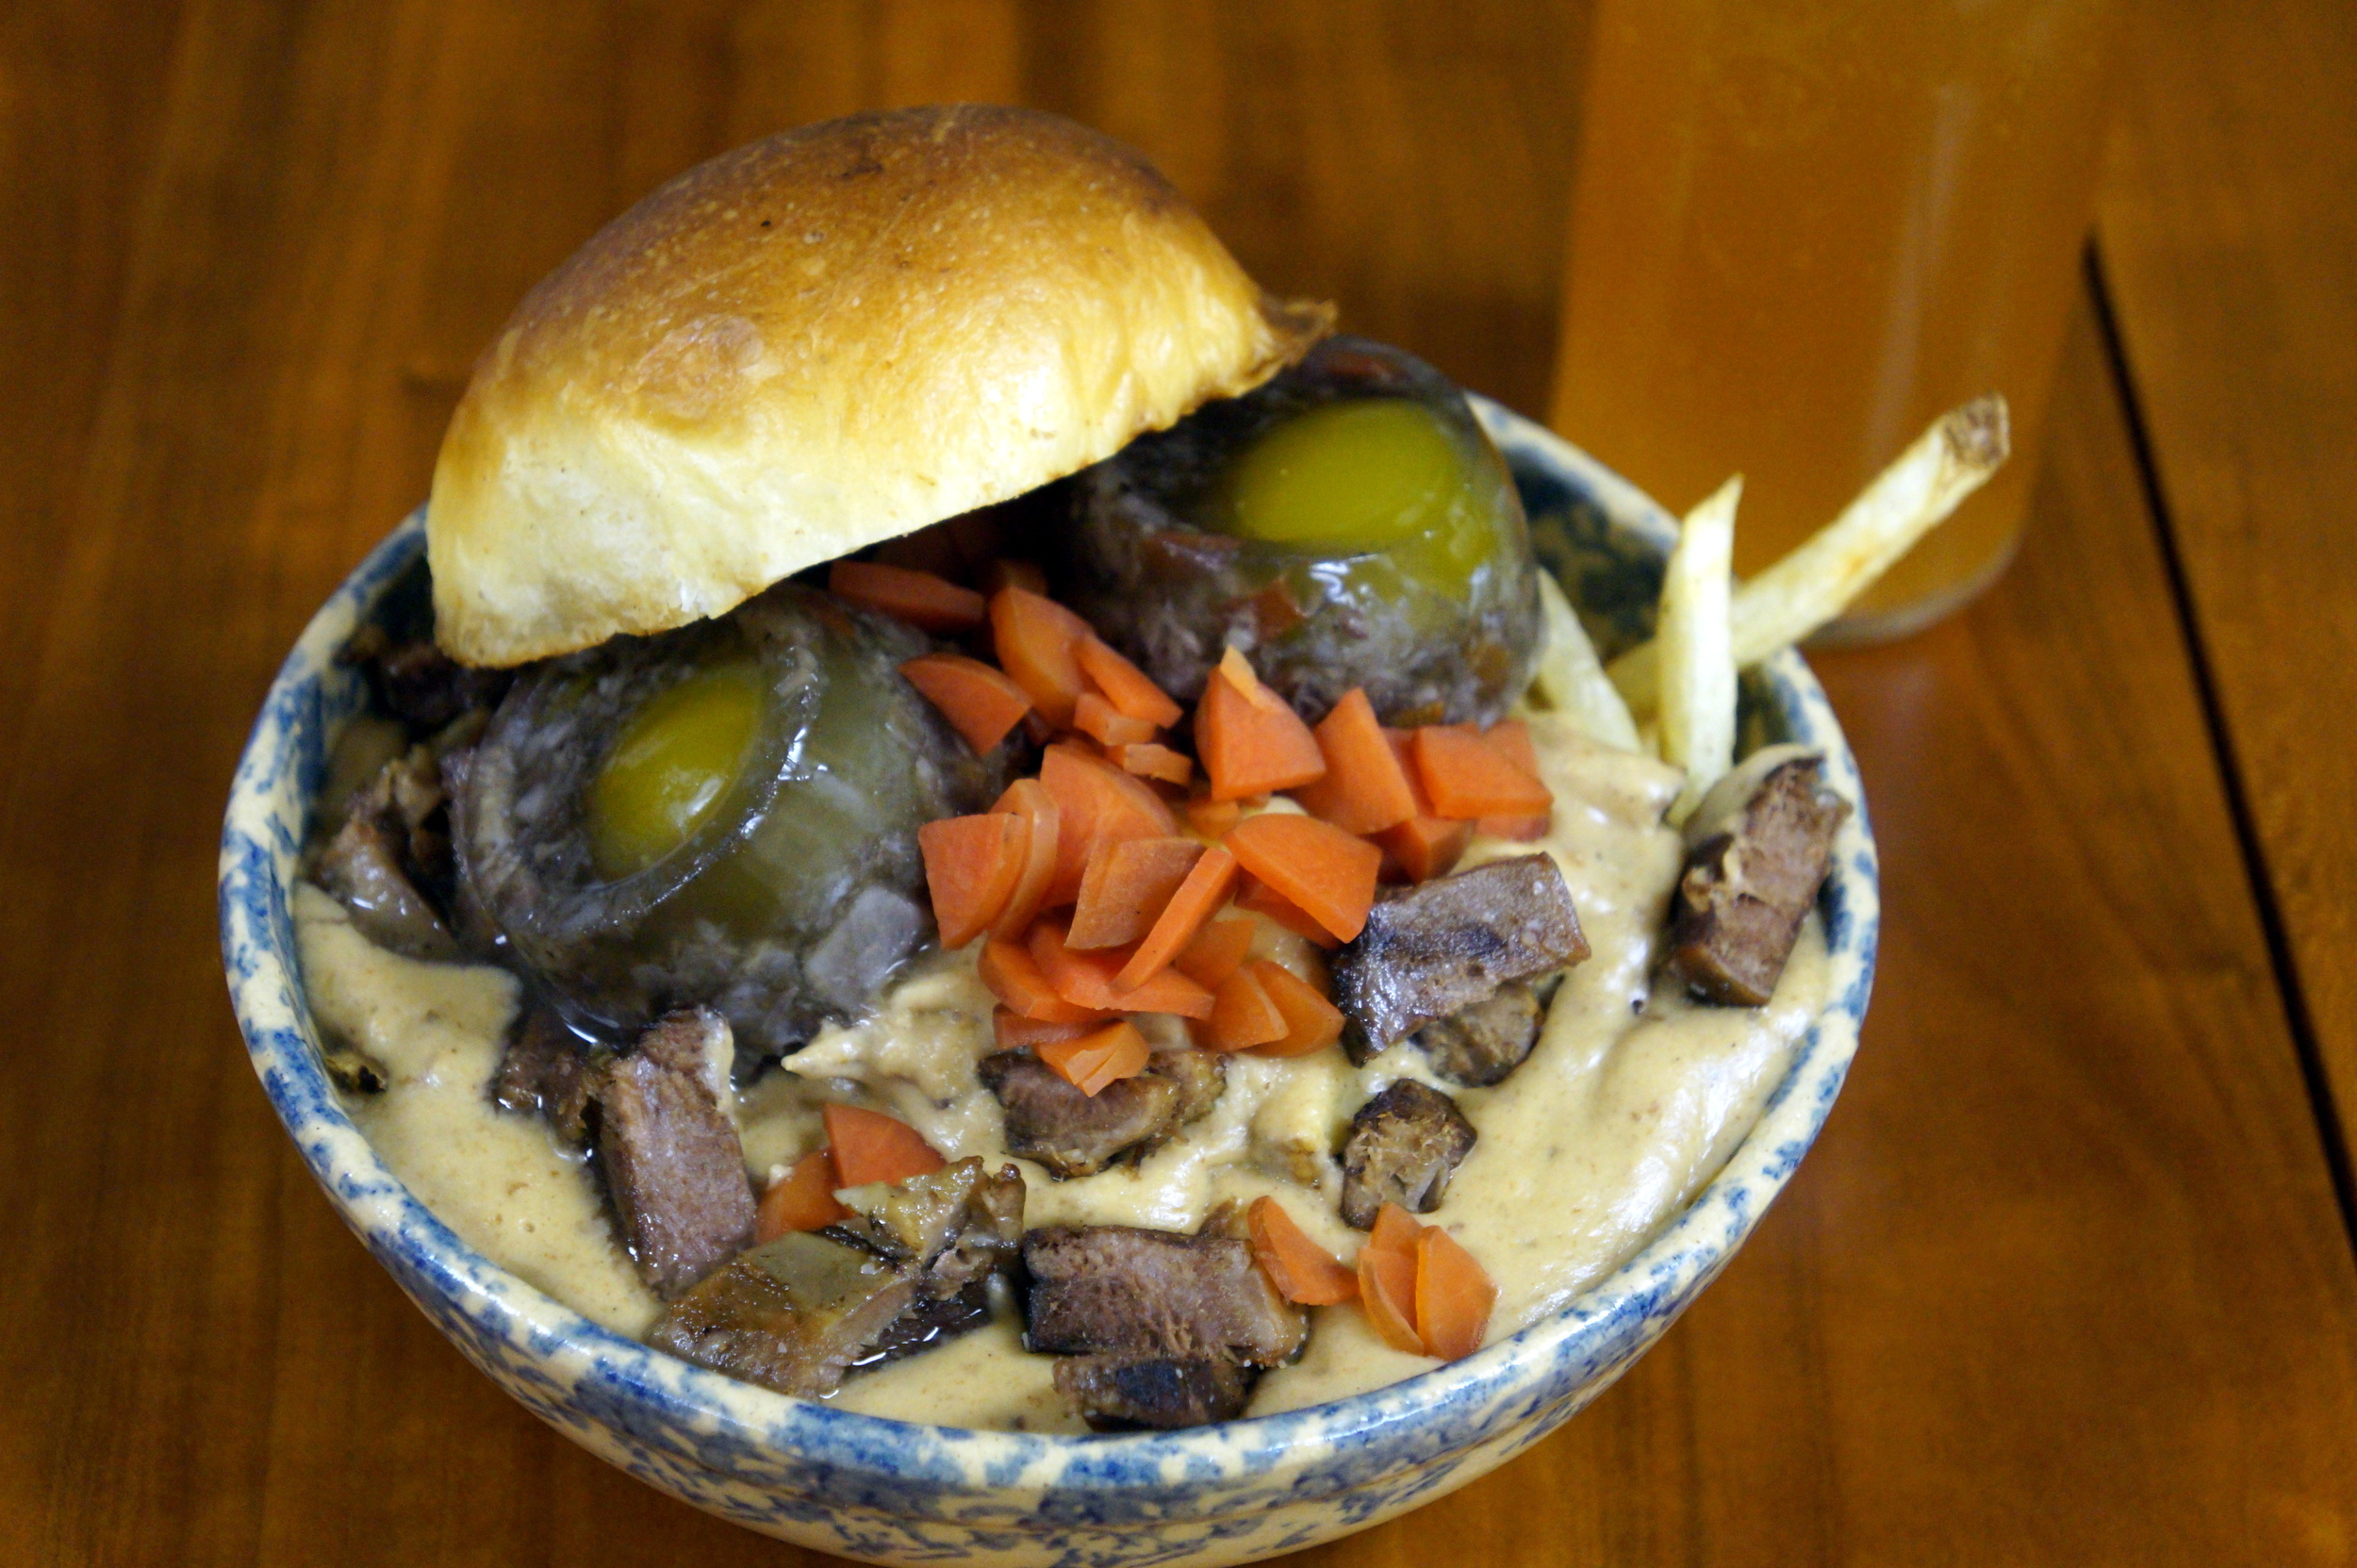 Hand-cut fries, Fischer Farms beef patty, Love Handle's beef tongue and mushroom gravy, Wisconsin cheese curds, Love Handle's jellied eggs, bacon and pickled carrots.